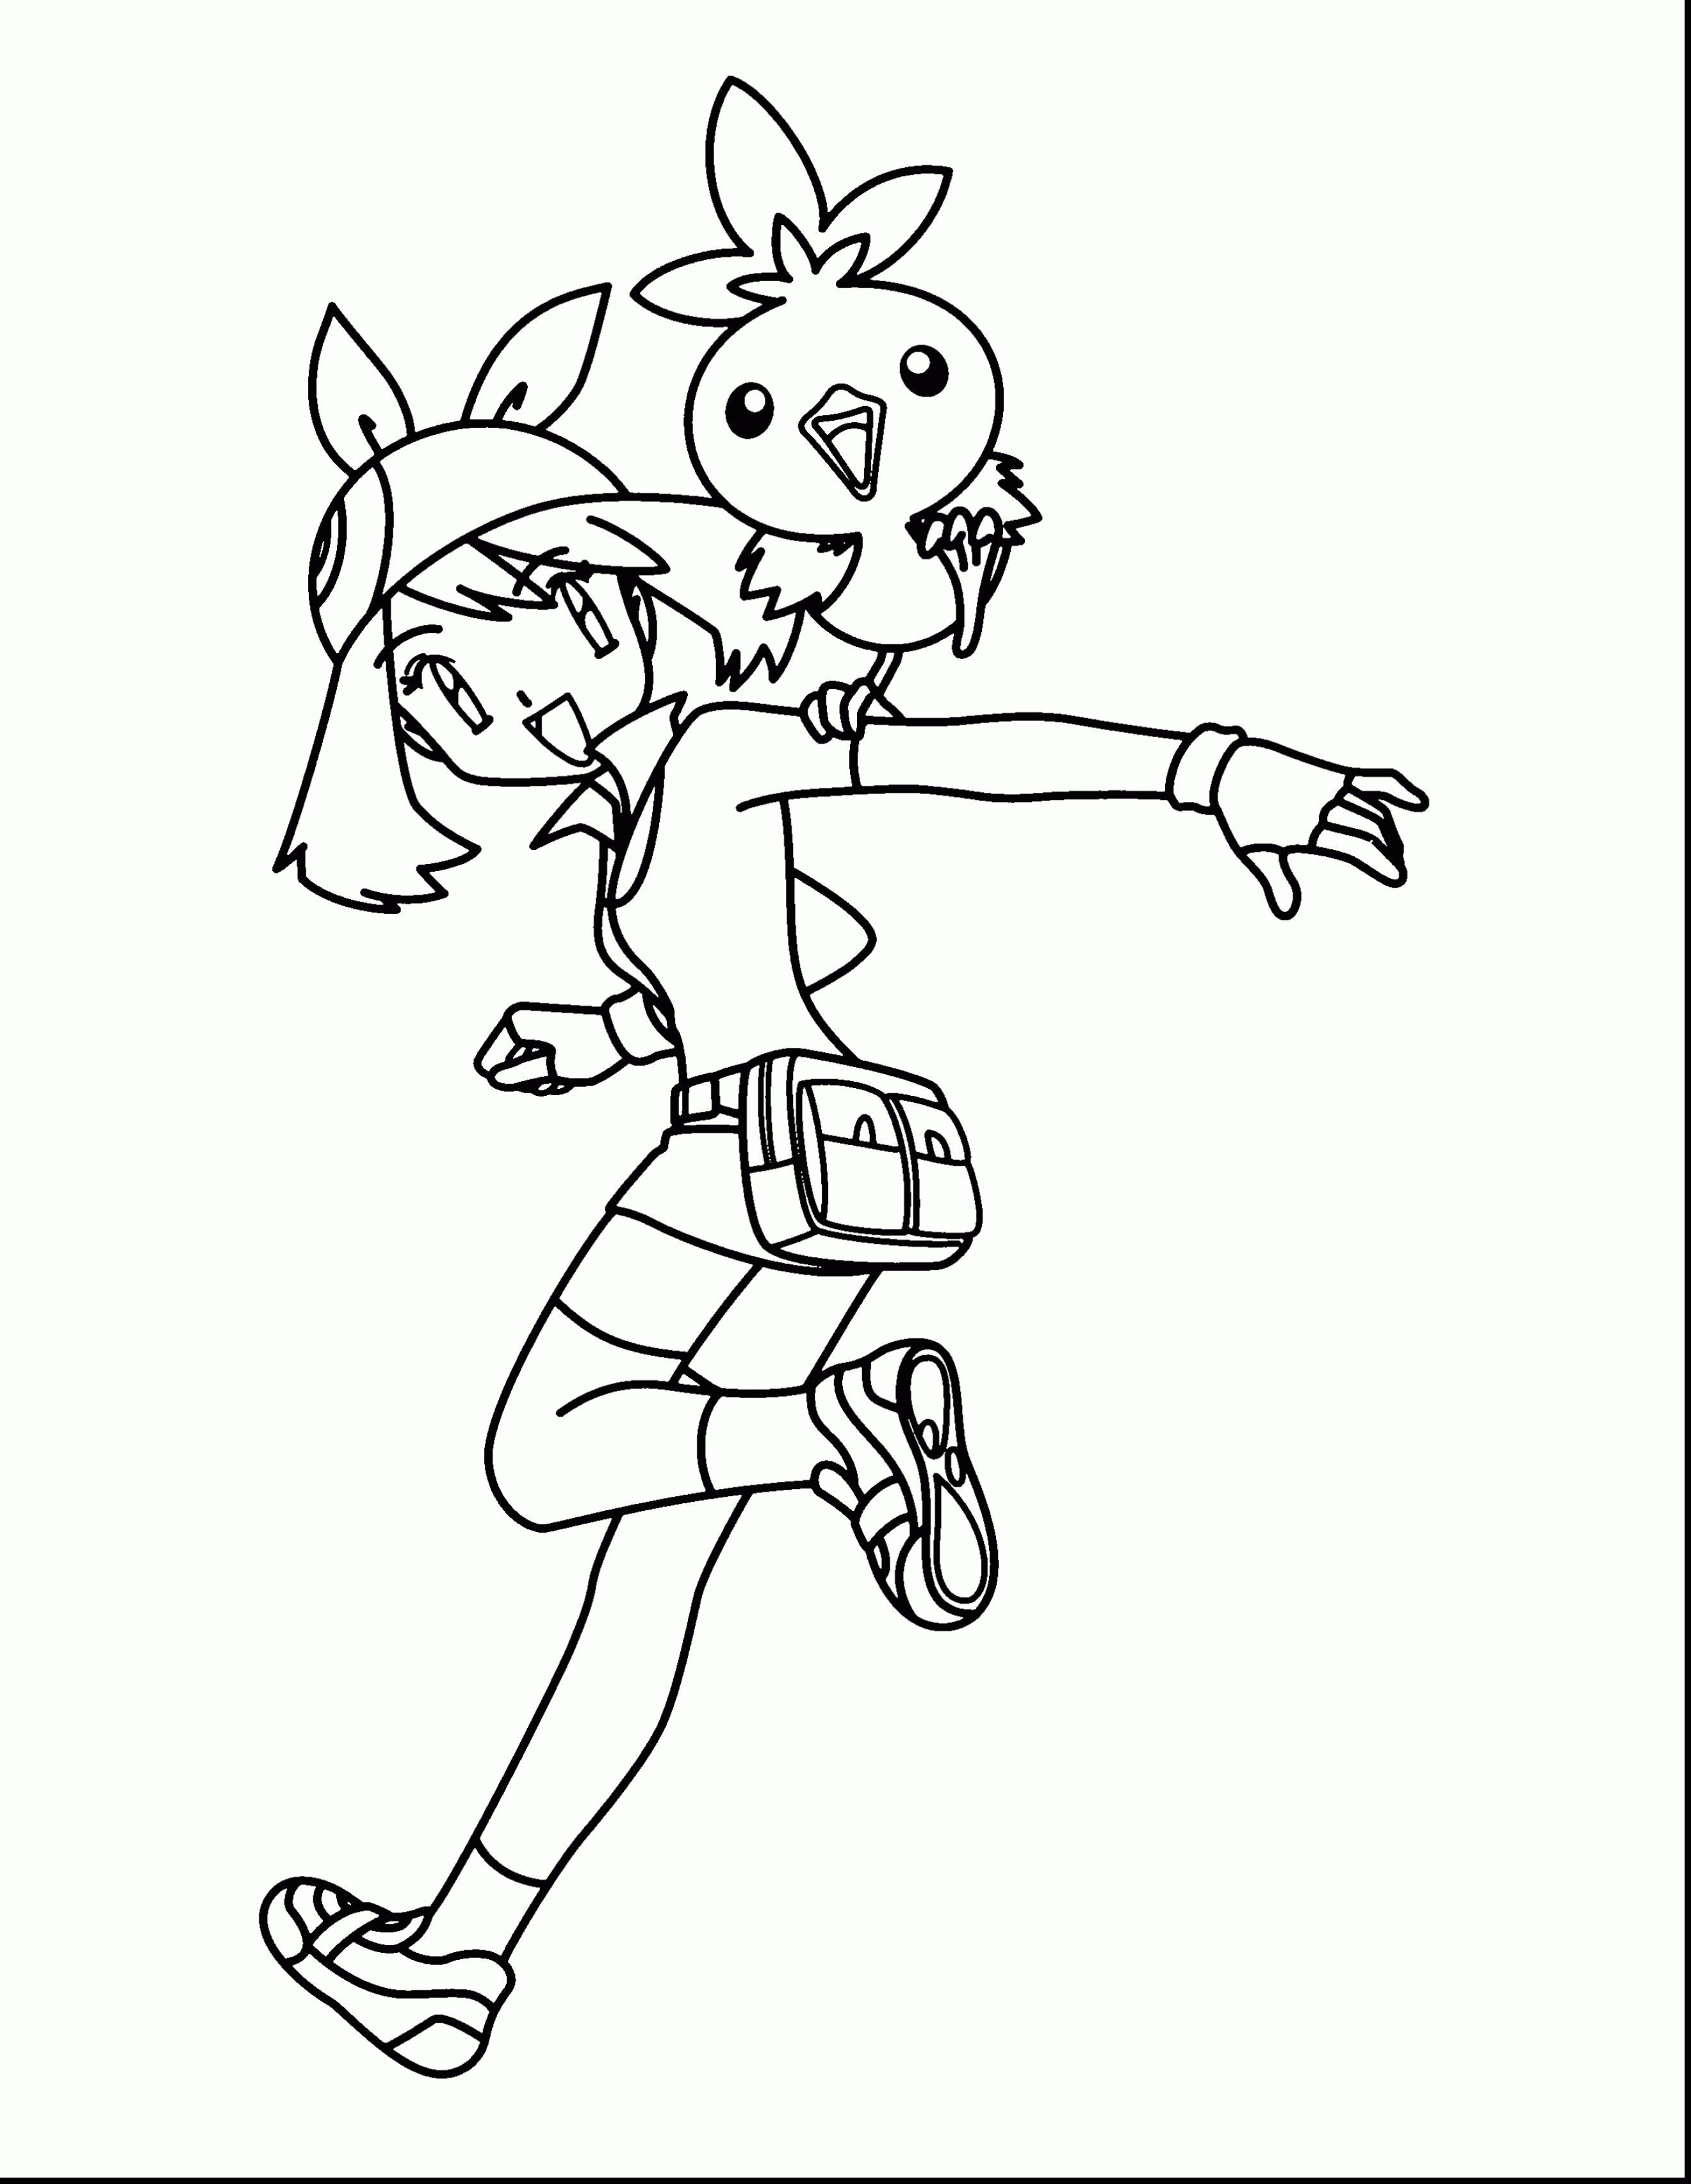 Pokemon may coloring pages through the thousand photographs on the net concerning pokemon may coloring pages we picks the very best collections along